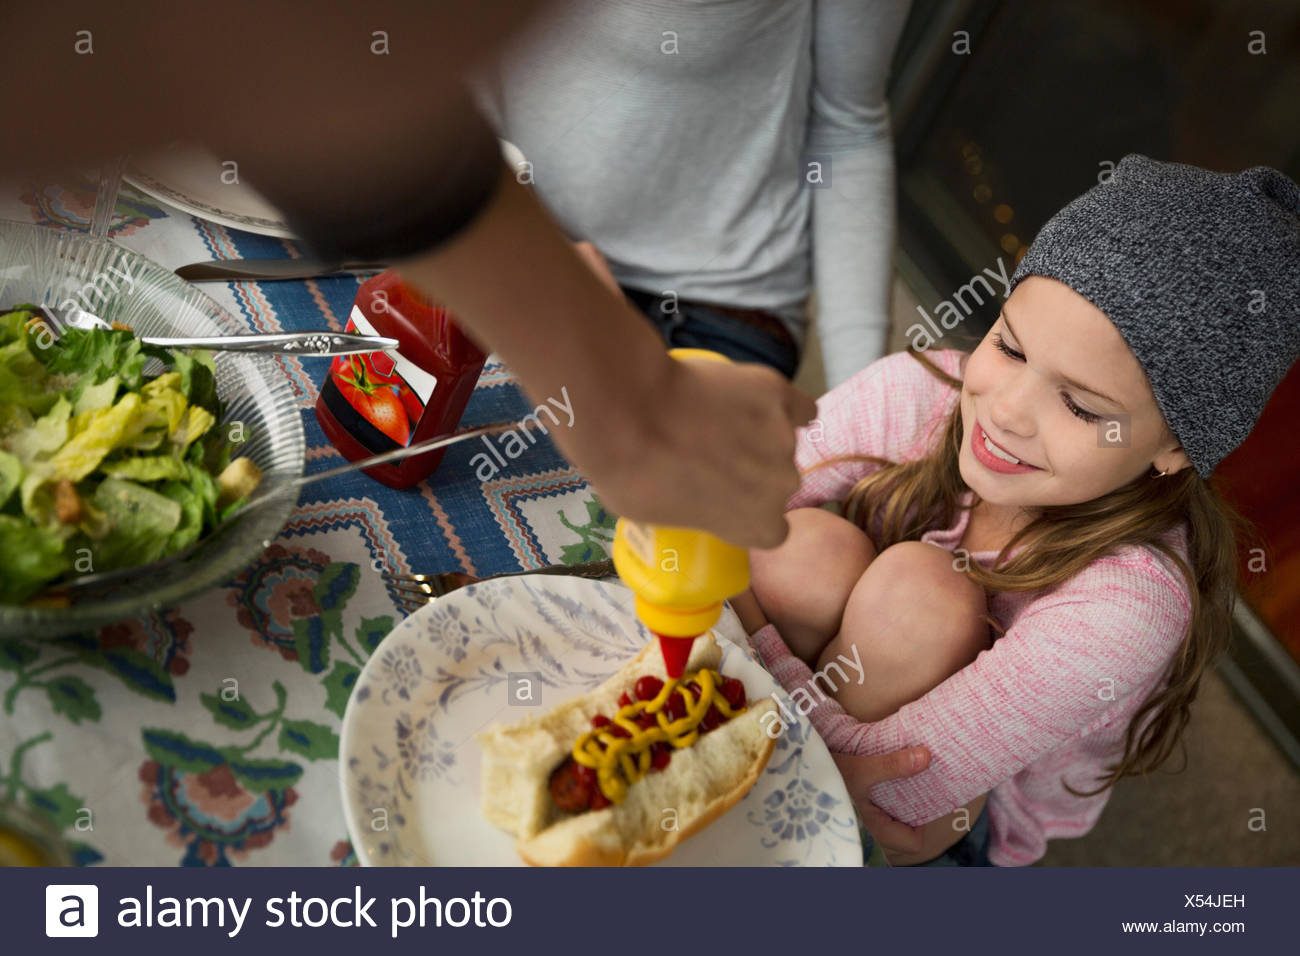 Girl watching brother squirt mustard on hot dog - Stock Image